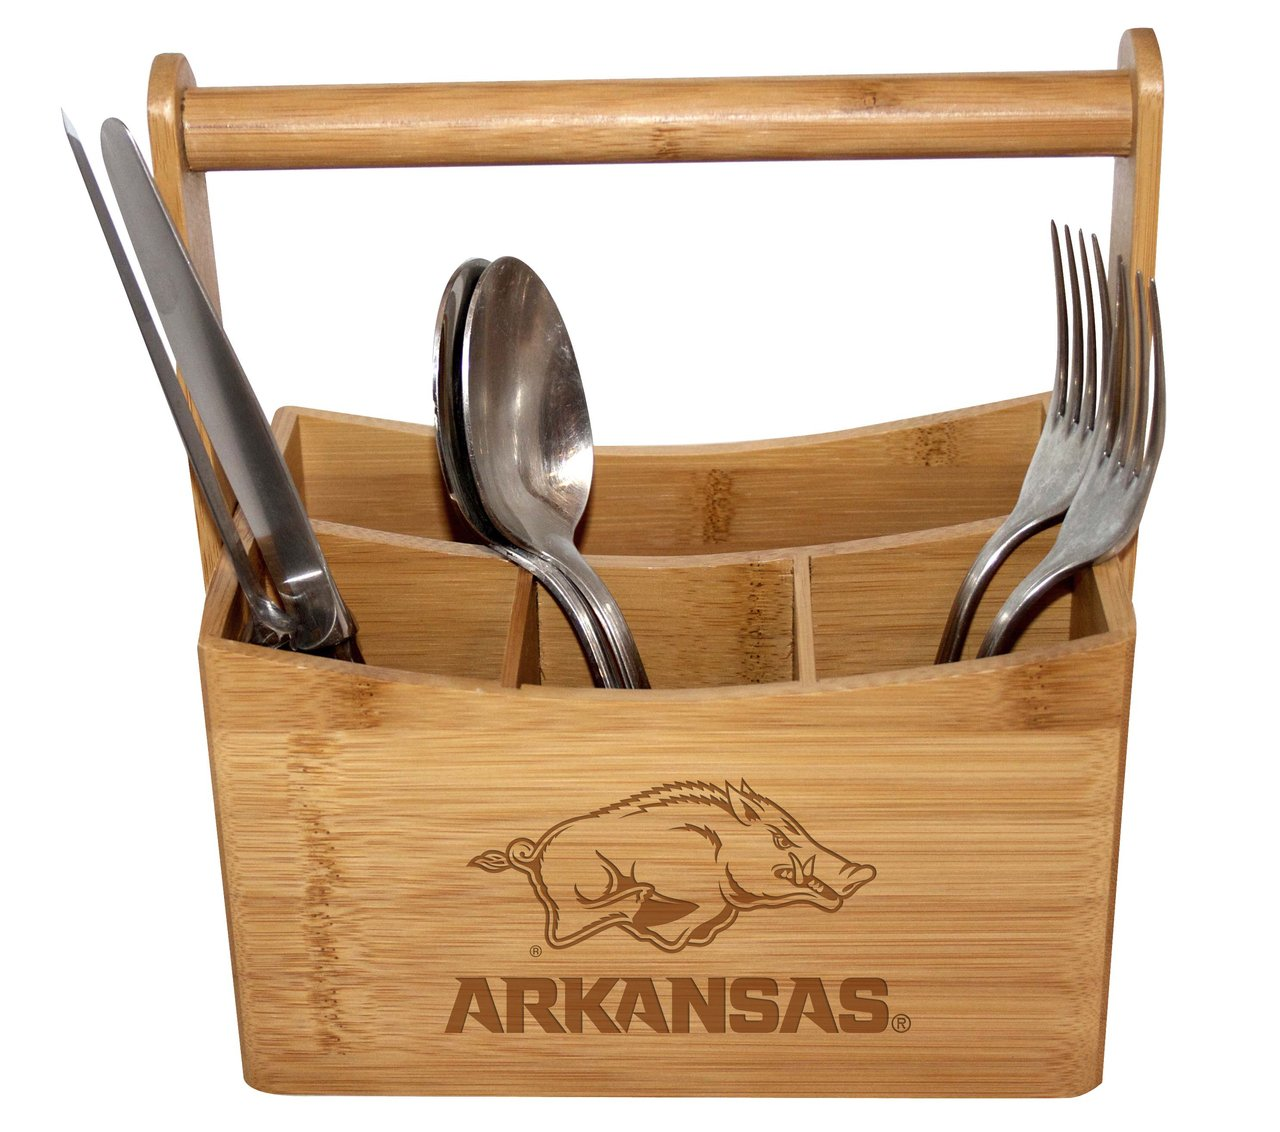 Arkansas Bamboo Caddy